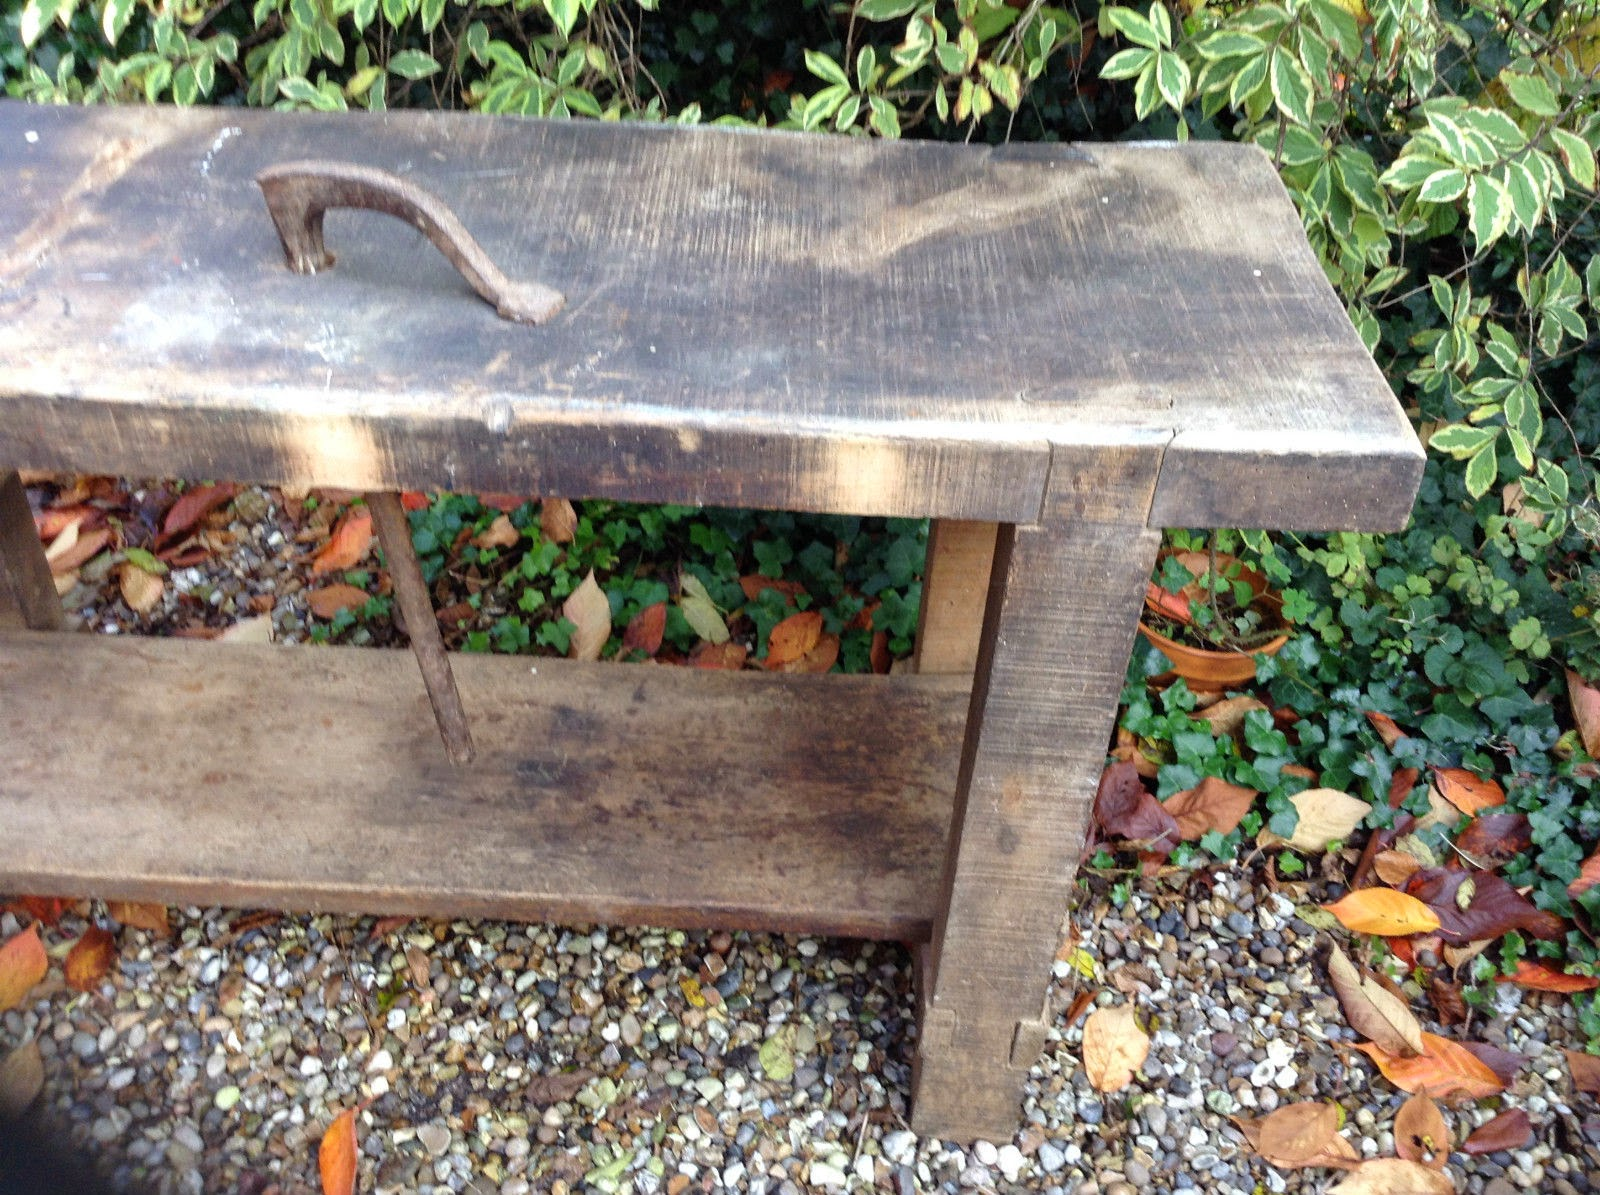 David Barron Furniture: An Original Roubo Style Bench for Sale on E Bay